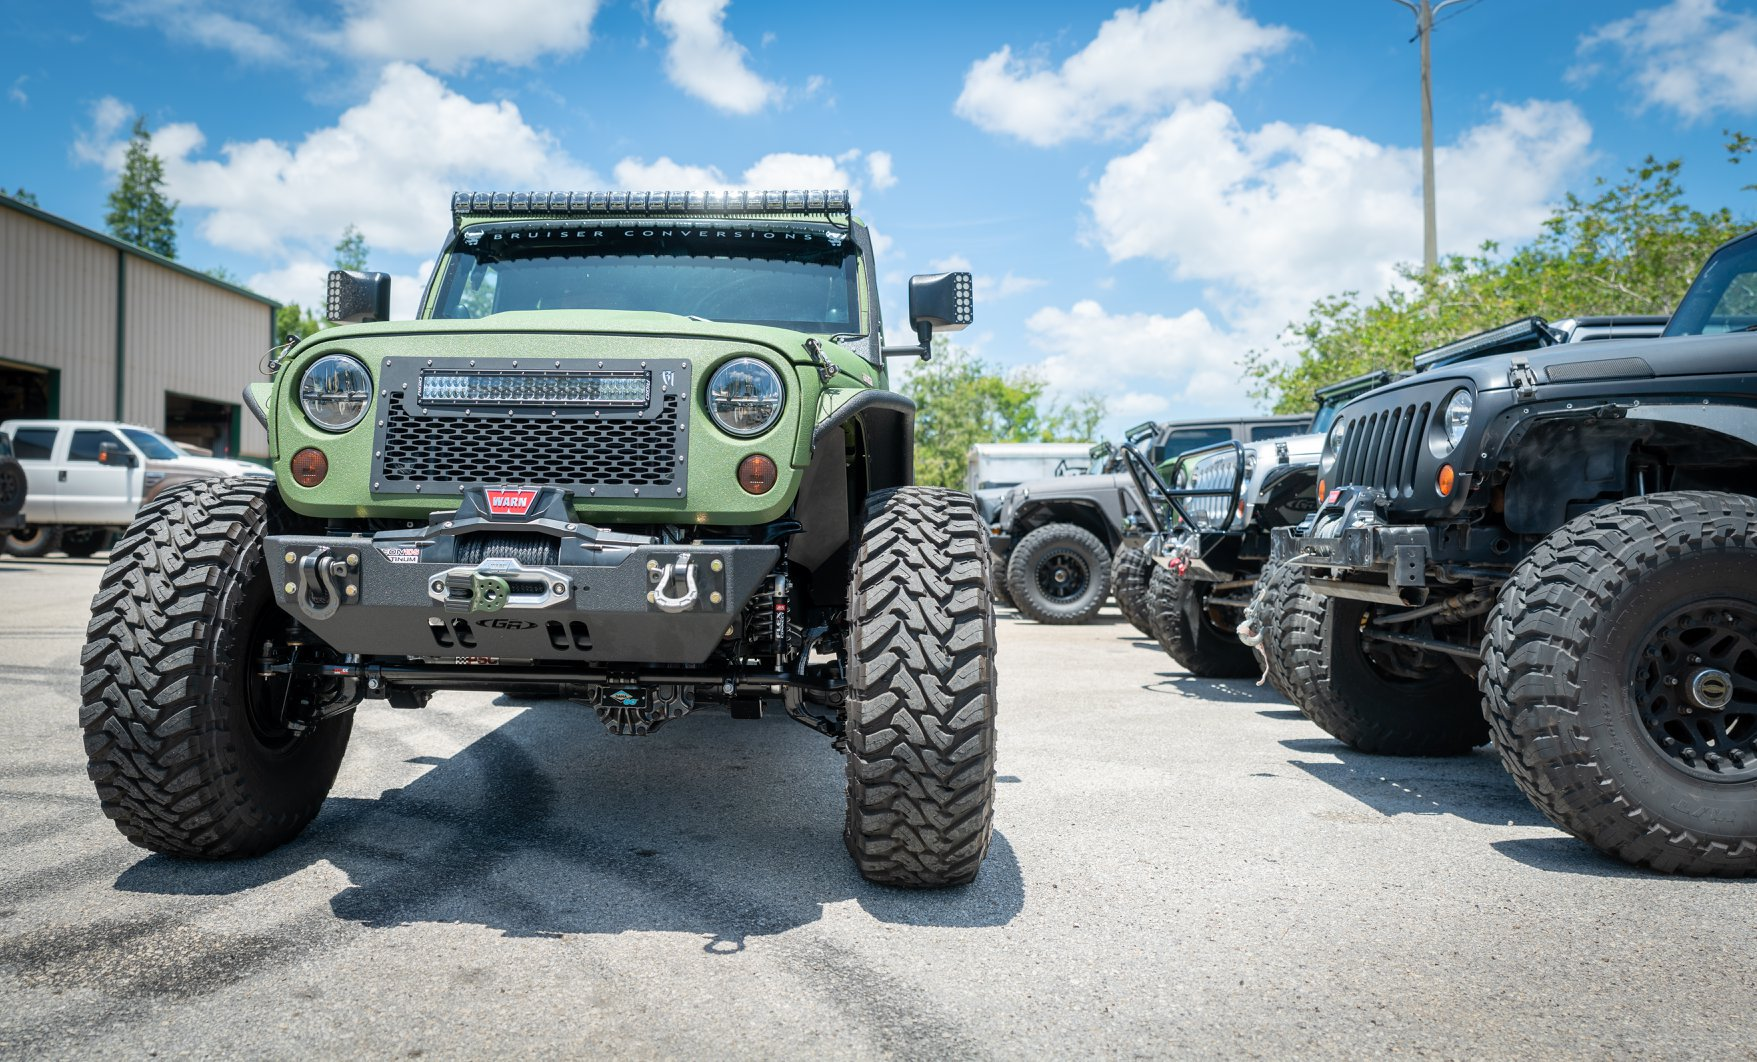 Jeep Wrangler 6x6 by Bruiser Conversions (21)